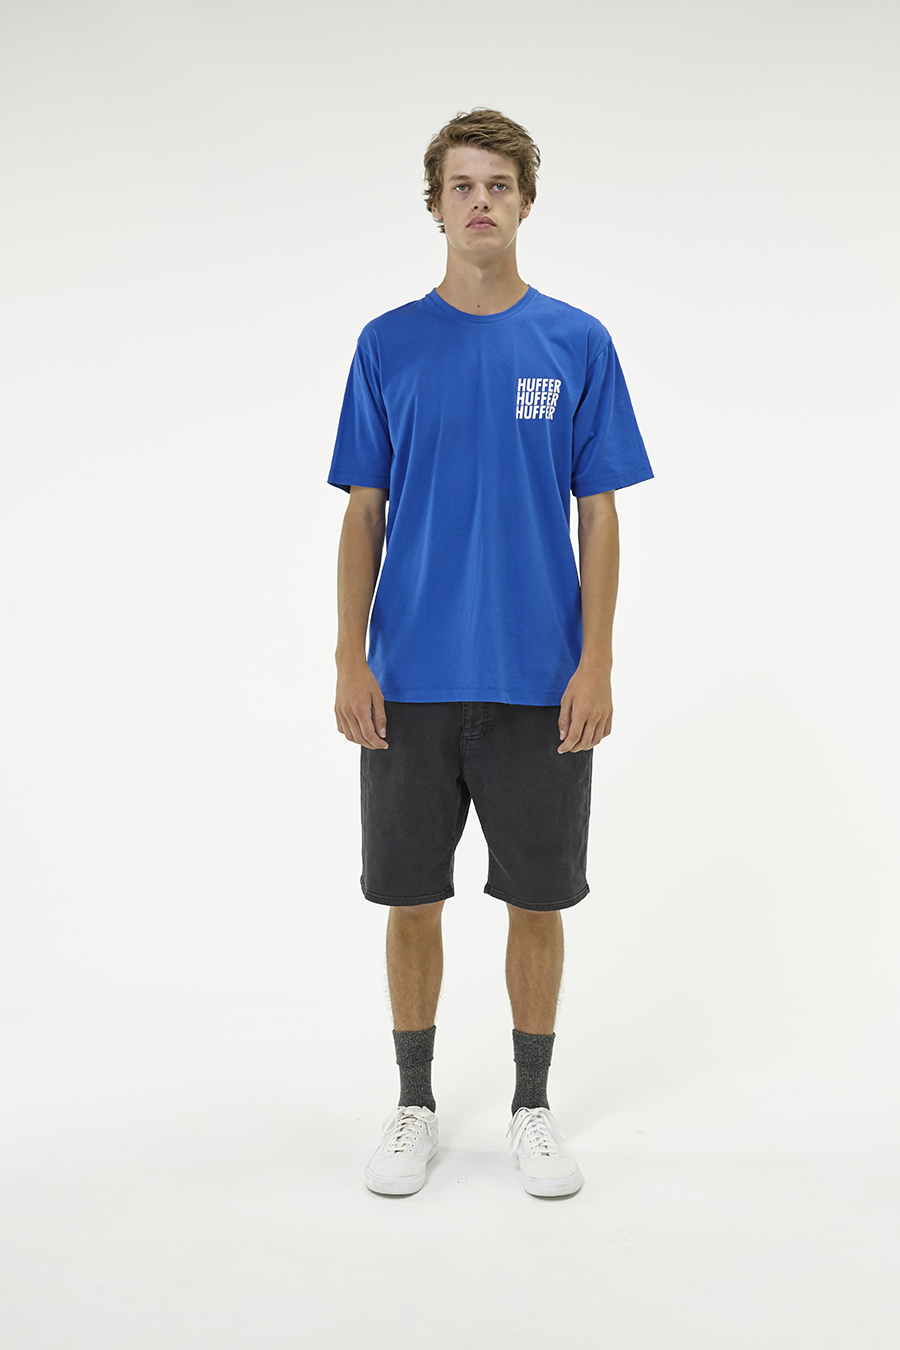 Huffer_Q3-16_M-The-Stacked-Tee_Cobolt-01